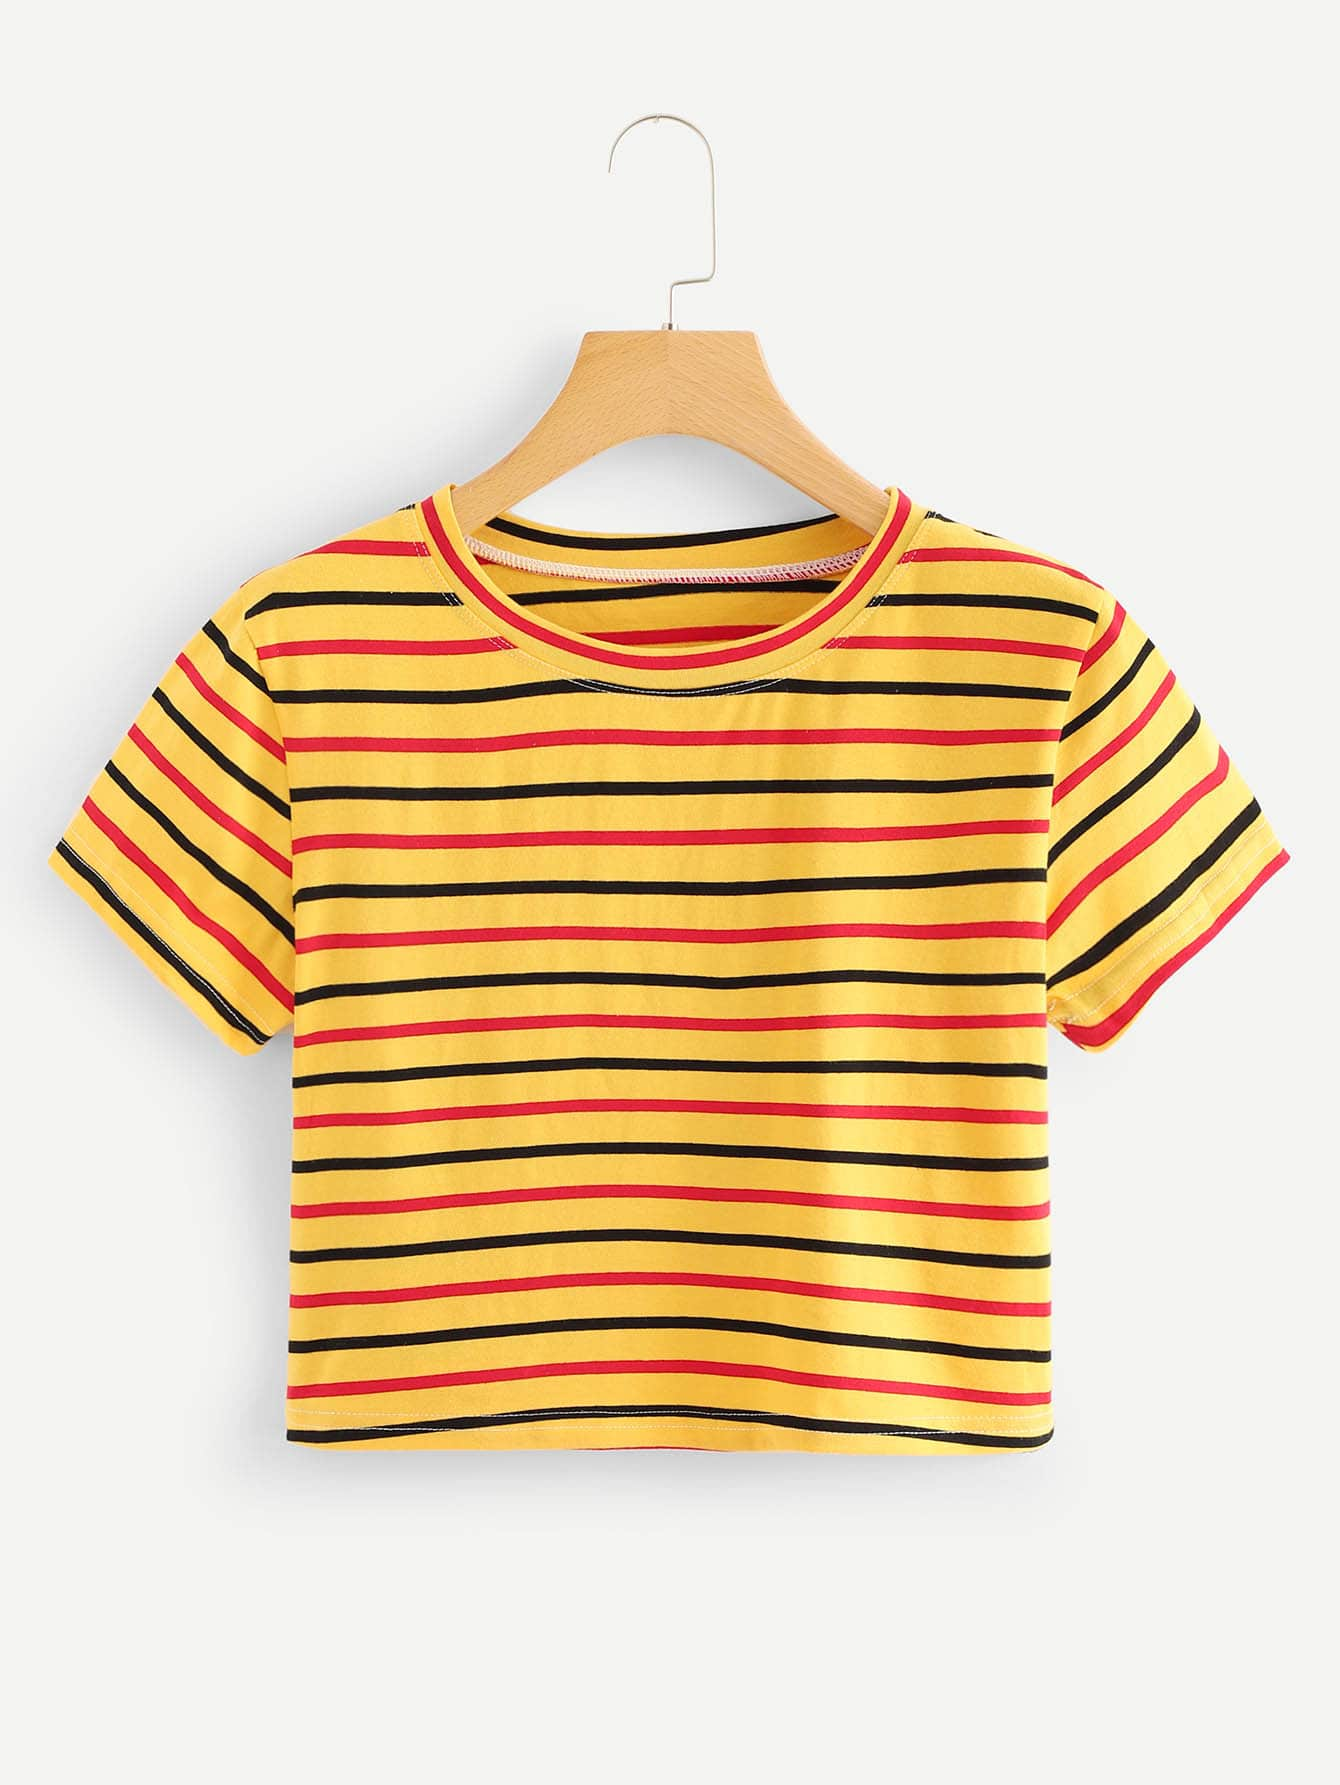 Contrast Striped Crop Tee contrast striped tee